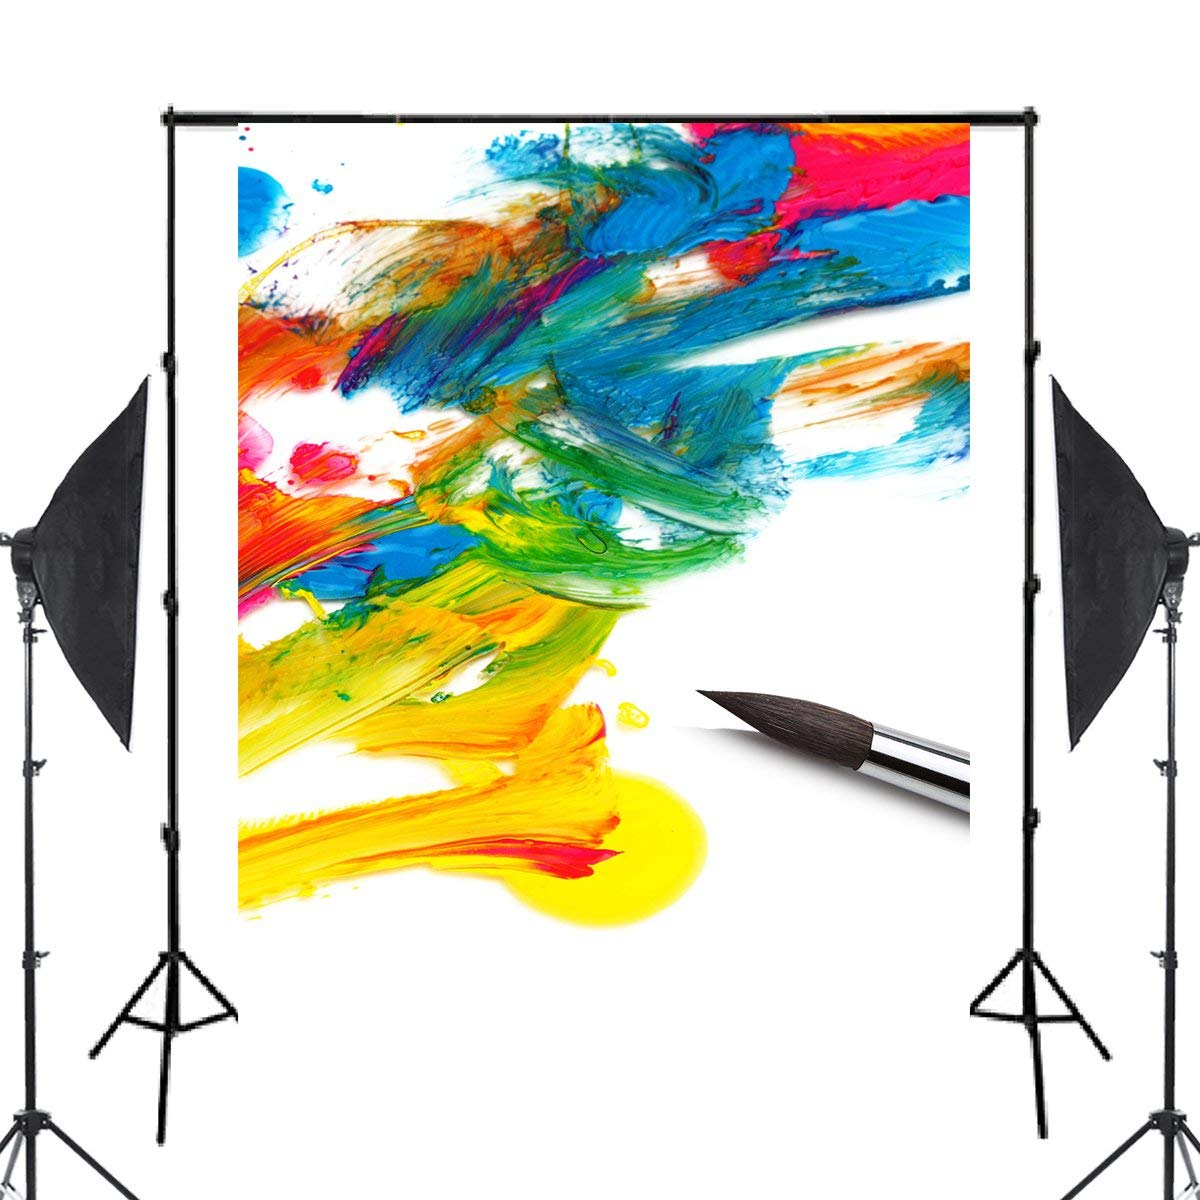 5x7ft Colorful Ink Painting Photography Backdrop Brush Background Art Photo Studio Backdrop in Photo Studio Accessories from Consumer Electronics